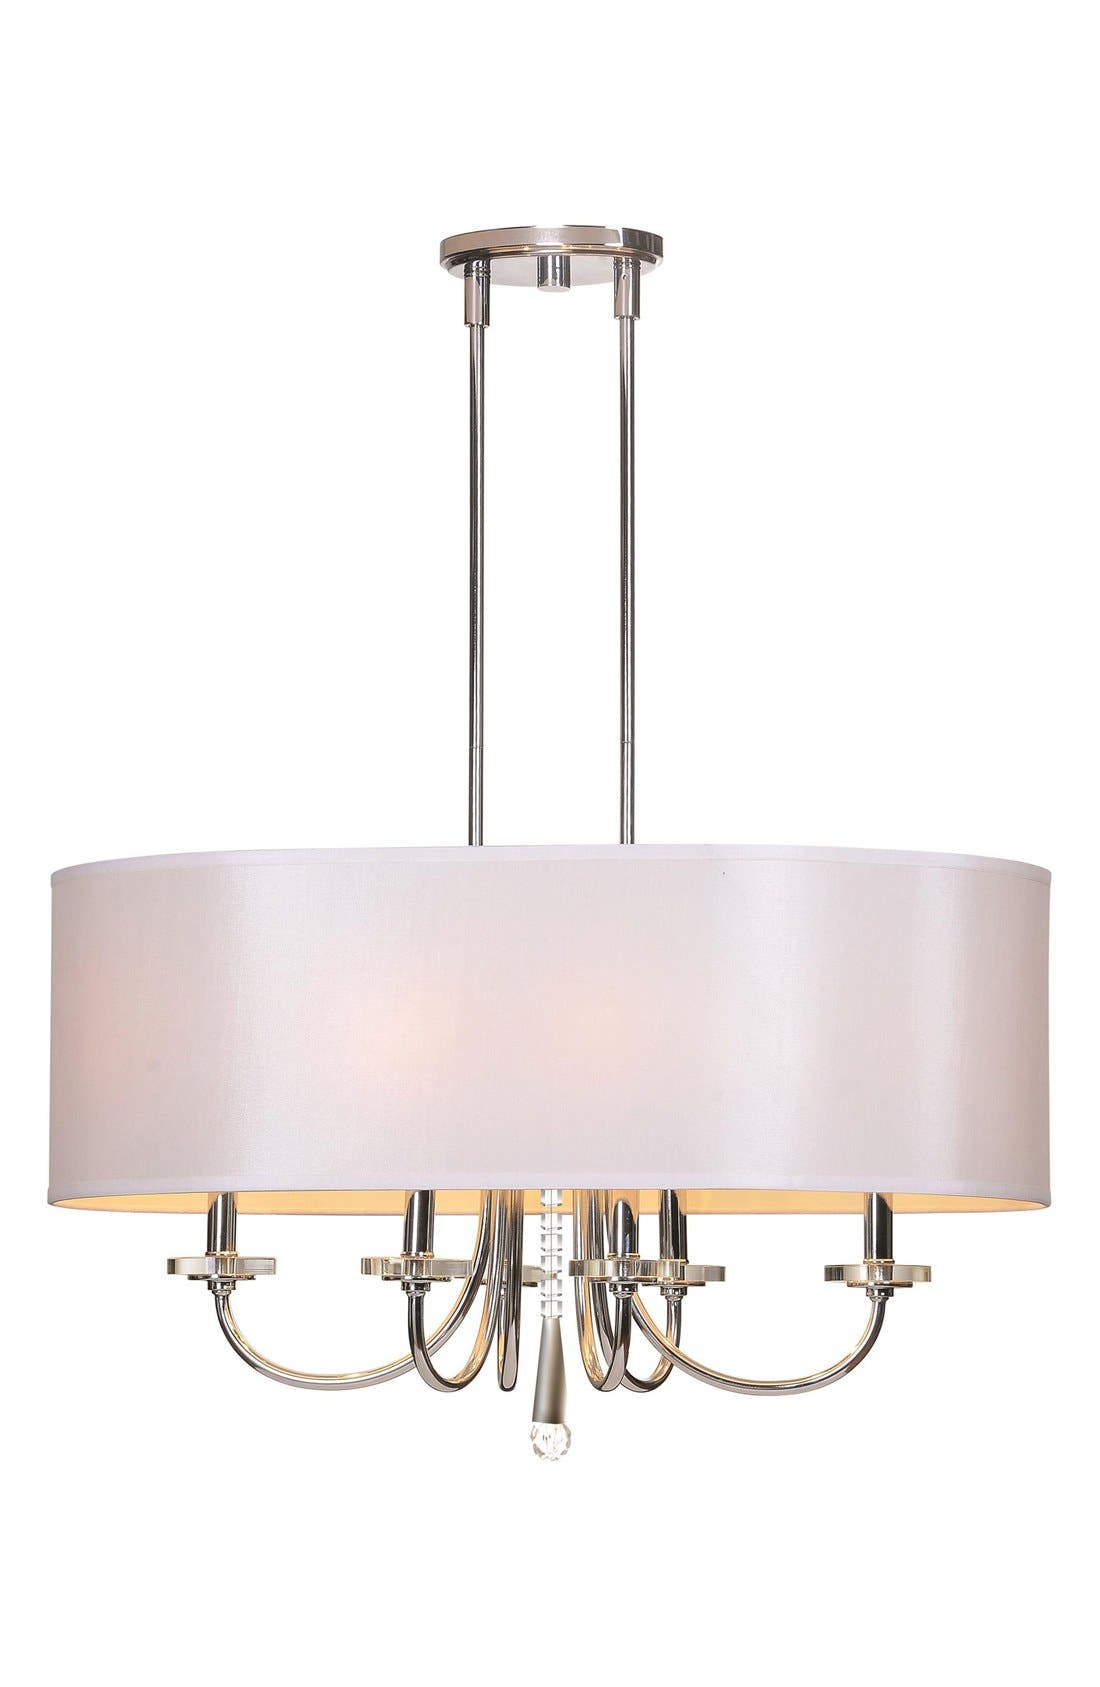 Alternate Image 1 Selected - Renwil'Lux' Ceiling Light Fixture